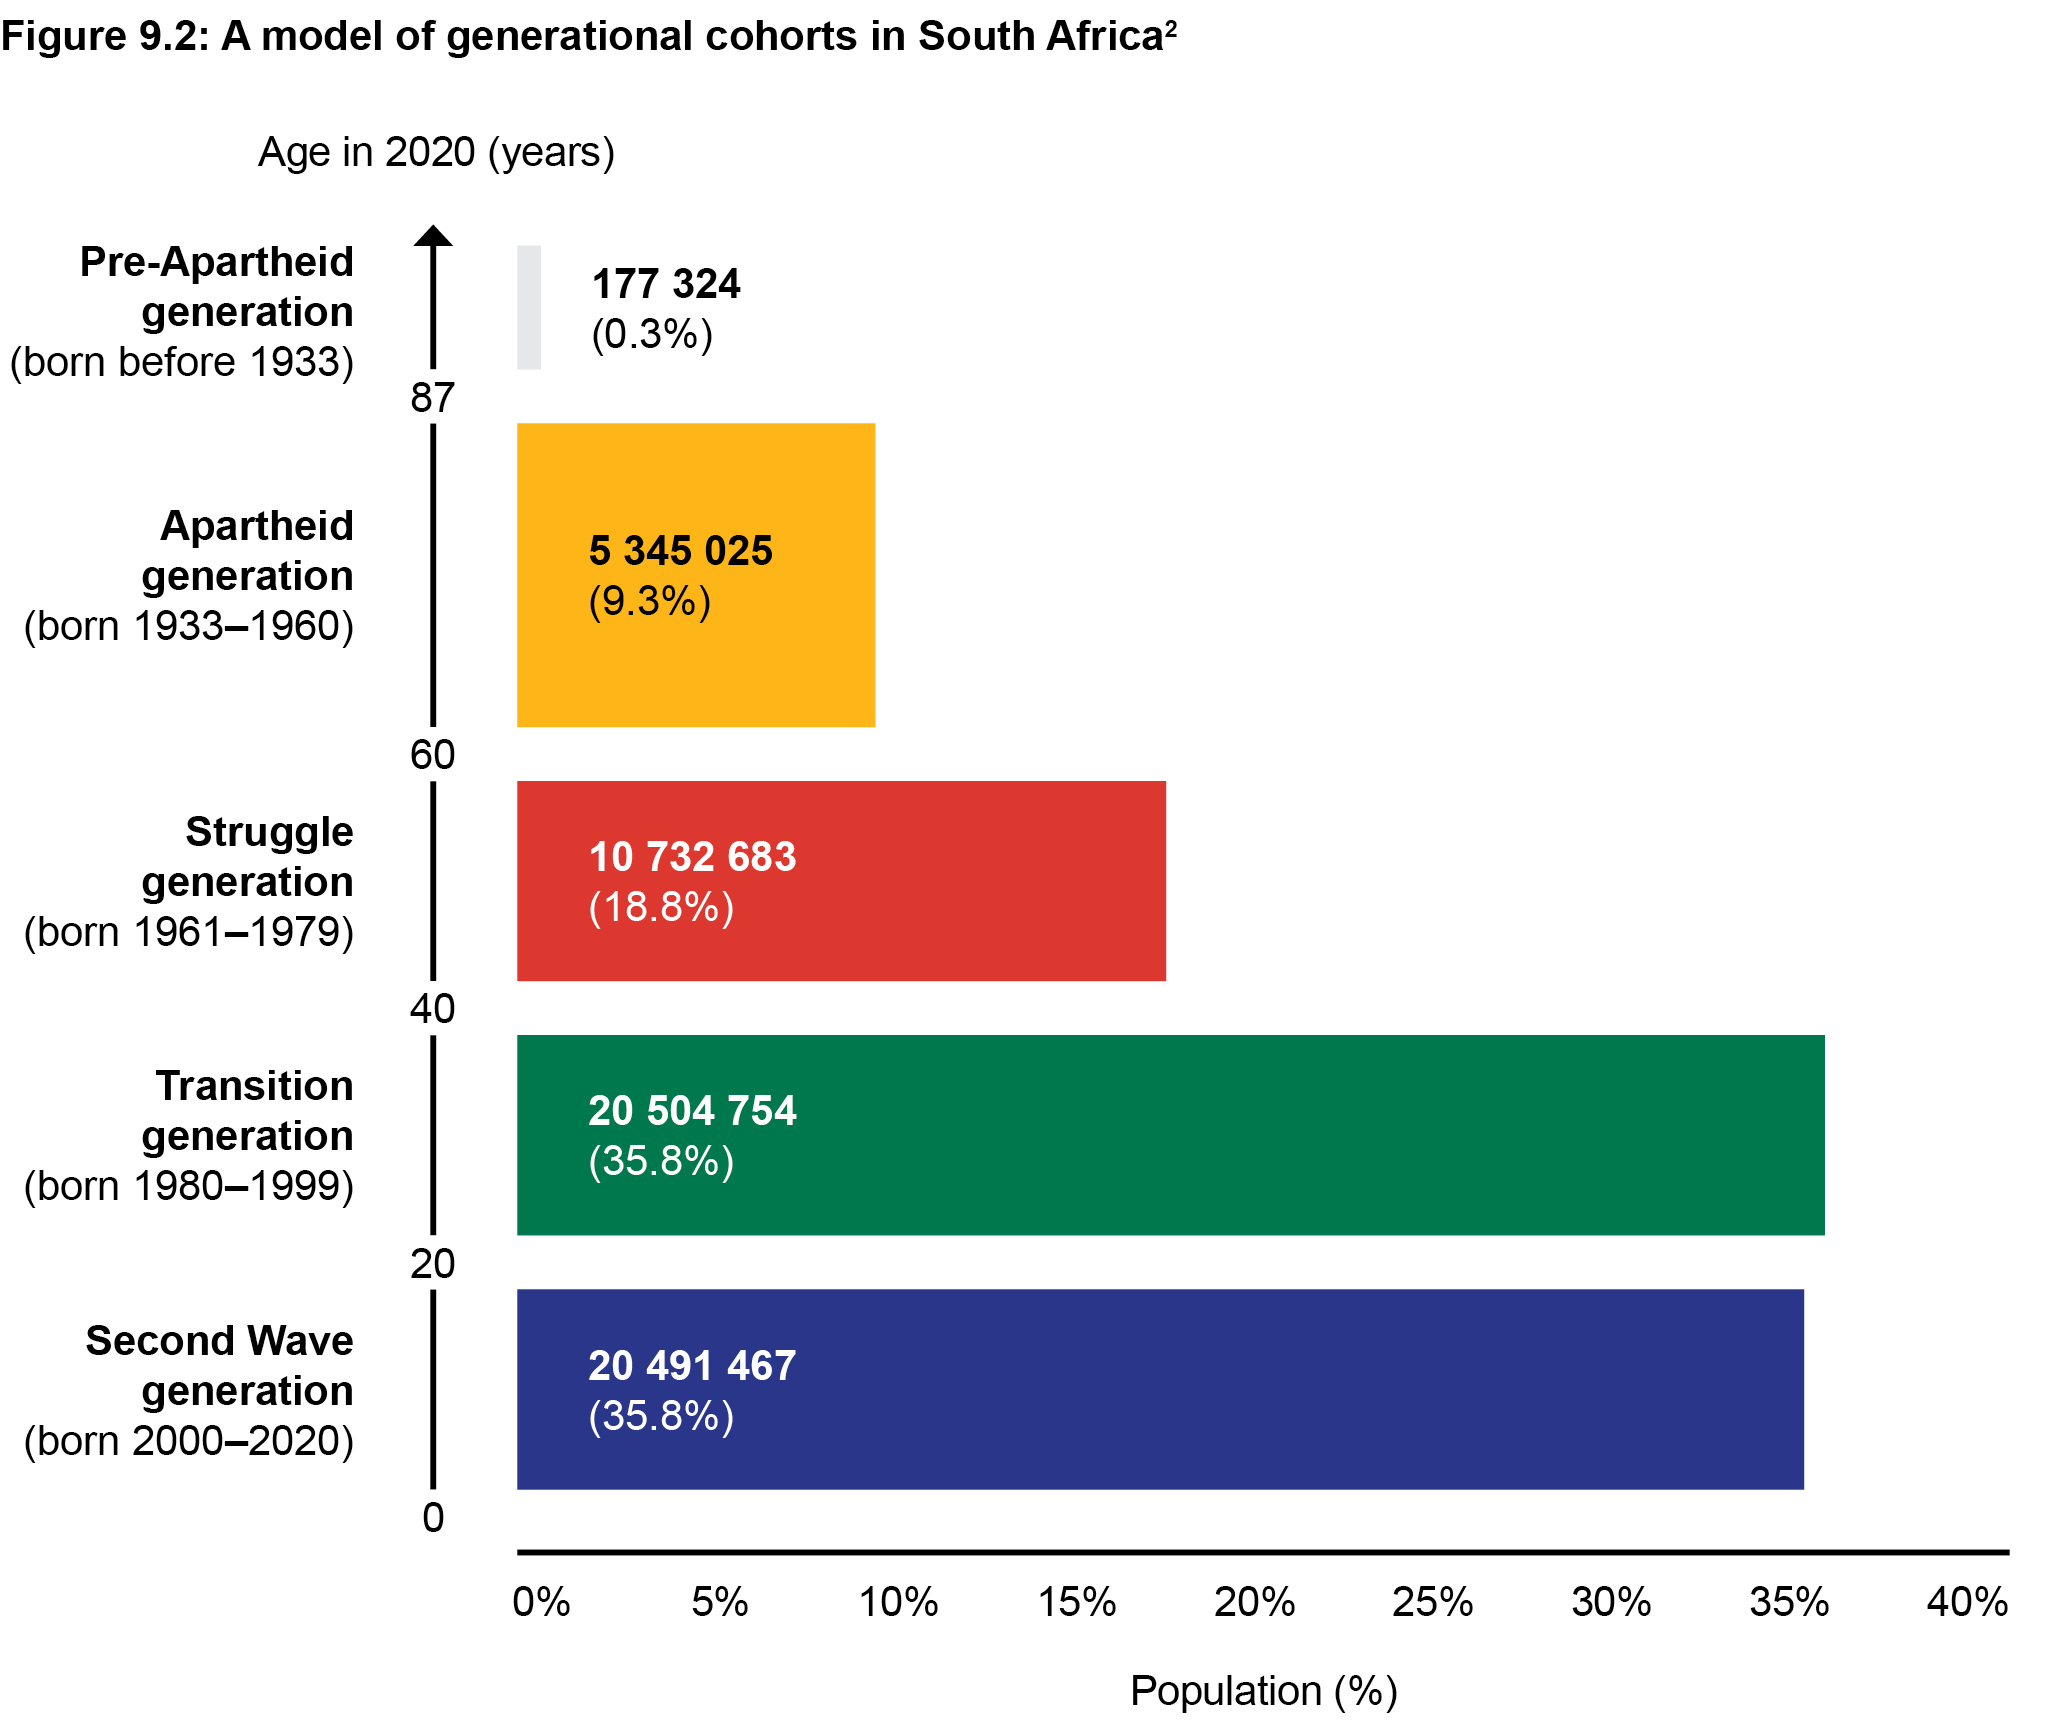 A model of generational cohorts in South Africa